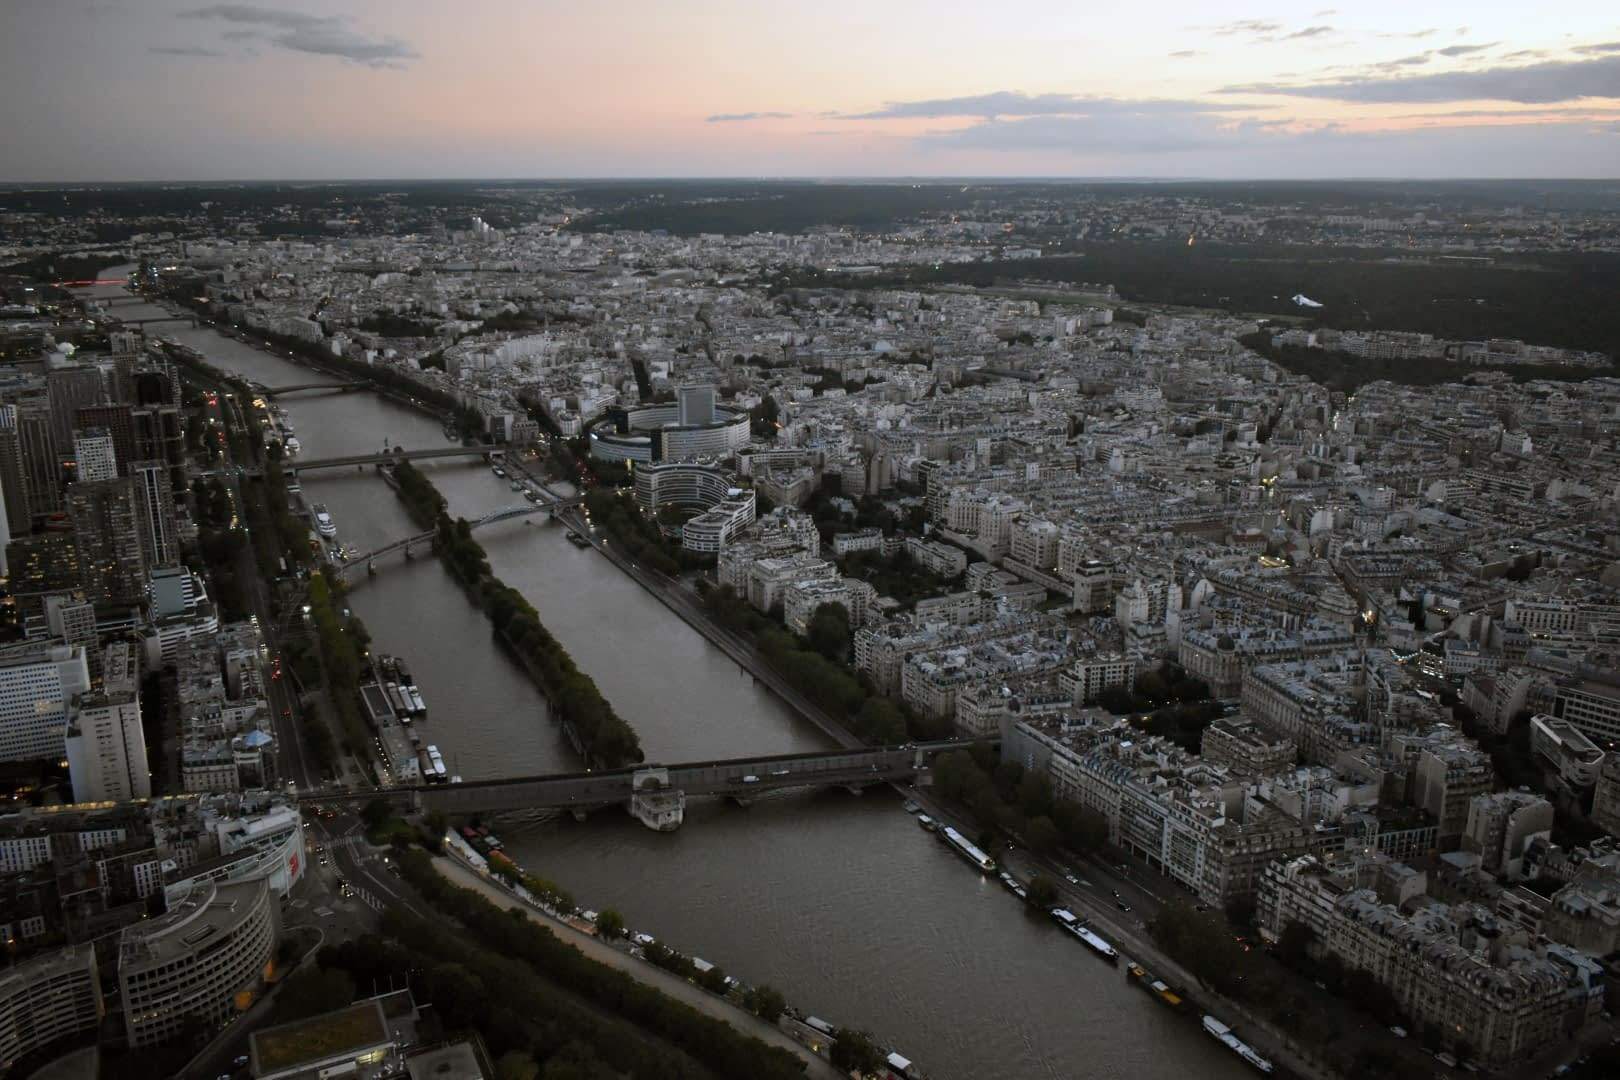 Rive droite and rive gauche, top of the Eiffel Tower, Paris